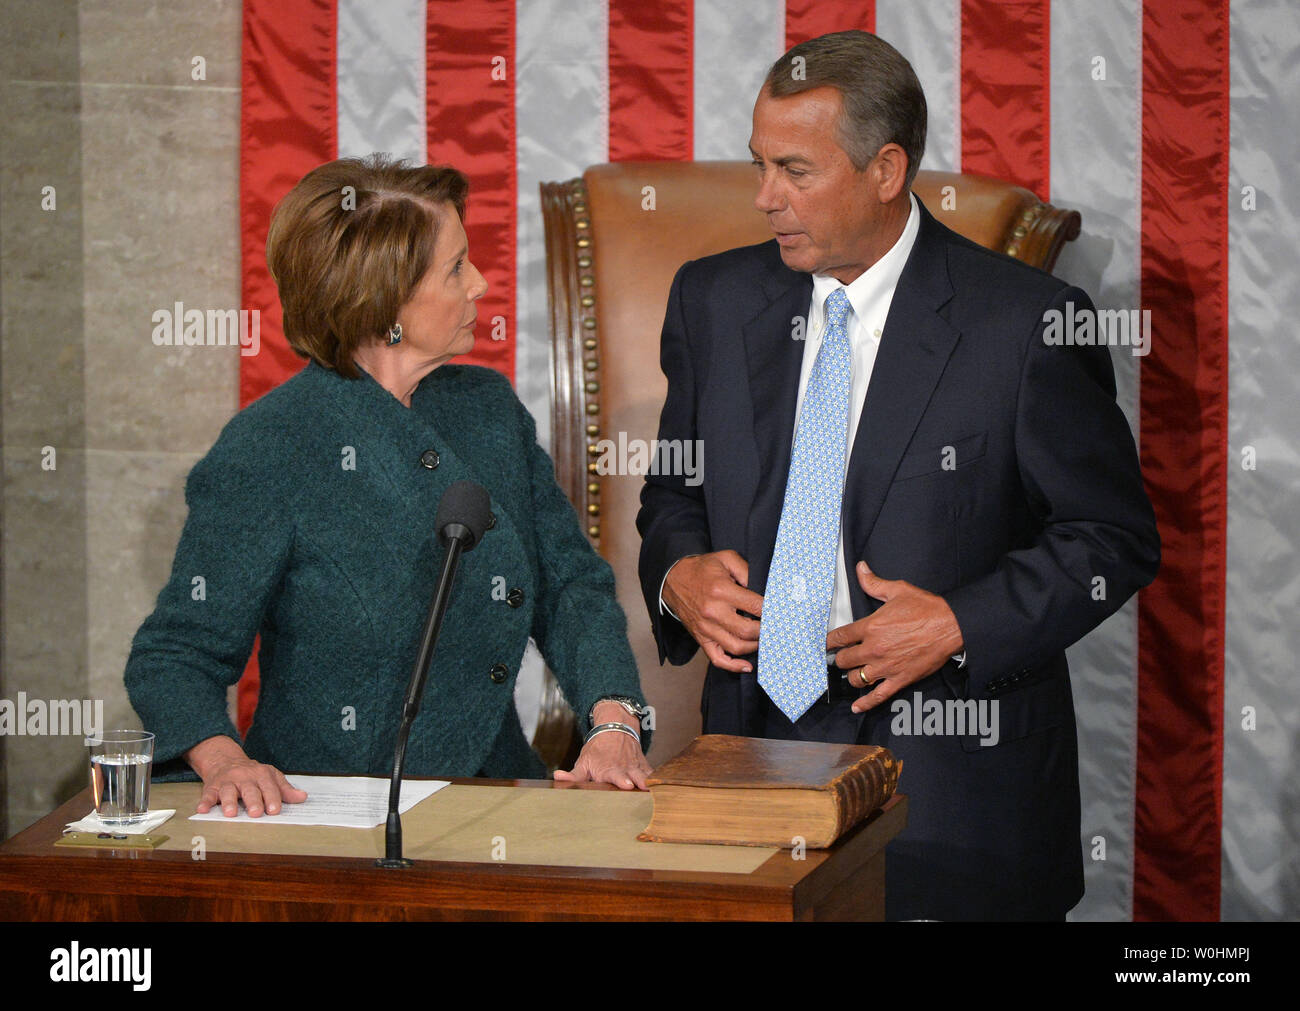 House Minority Leader Nancy Pelosi, D-CA, talks to Speaker of the House John Boehner, R-OH, after he was reelected as the Speaker during the first day of the 114th Congress, inside the House Chambers of the U.S. Capitol Building in Washington, D.C. on January 6, 2015. Photo by Kevin Dietsch/UPI - Stock Image